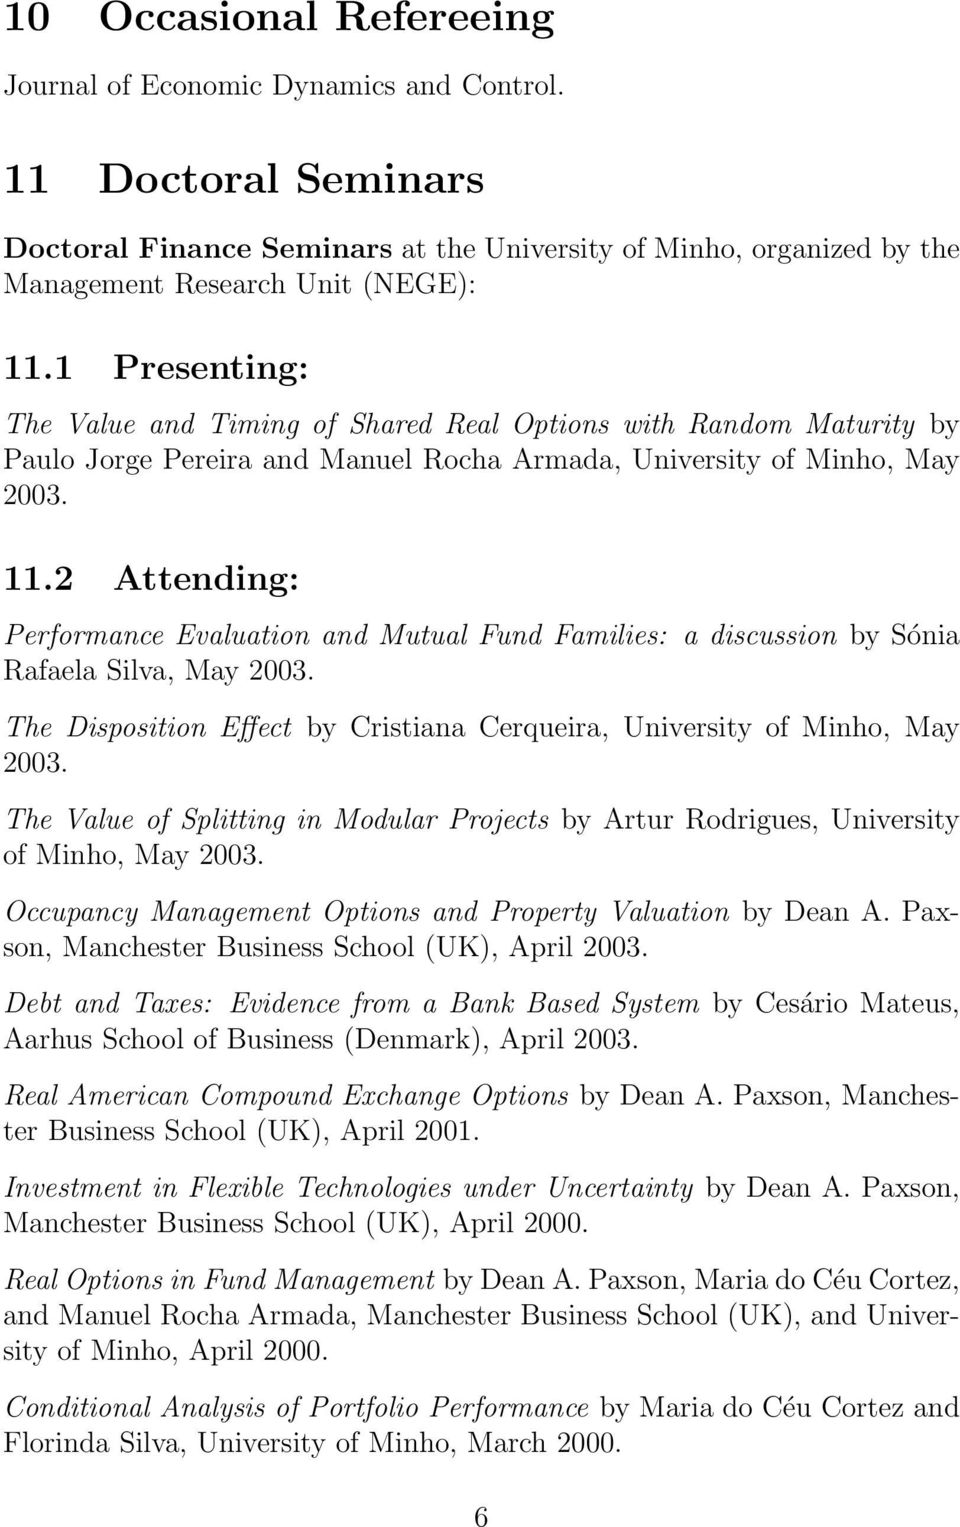 2 Attending: Performance Evaluation and Mutual Fund Families: a discussion by Sónia Rafaela Silva, May 2003. The Disposition Effect by Cristiana Cerqueira, University of Minho, May 2003.